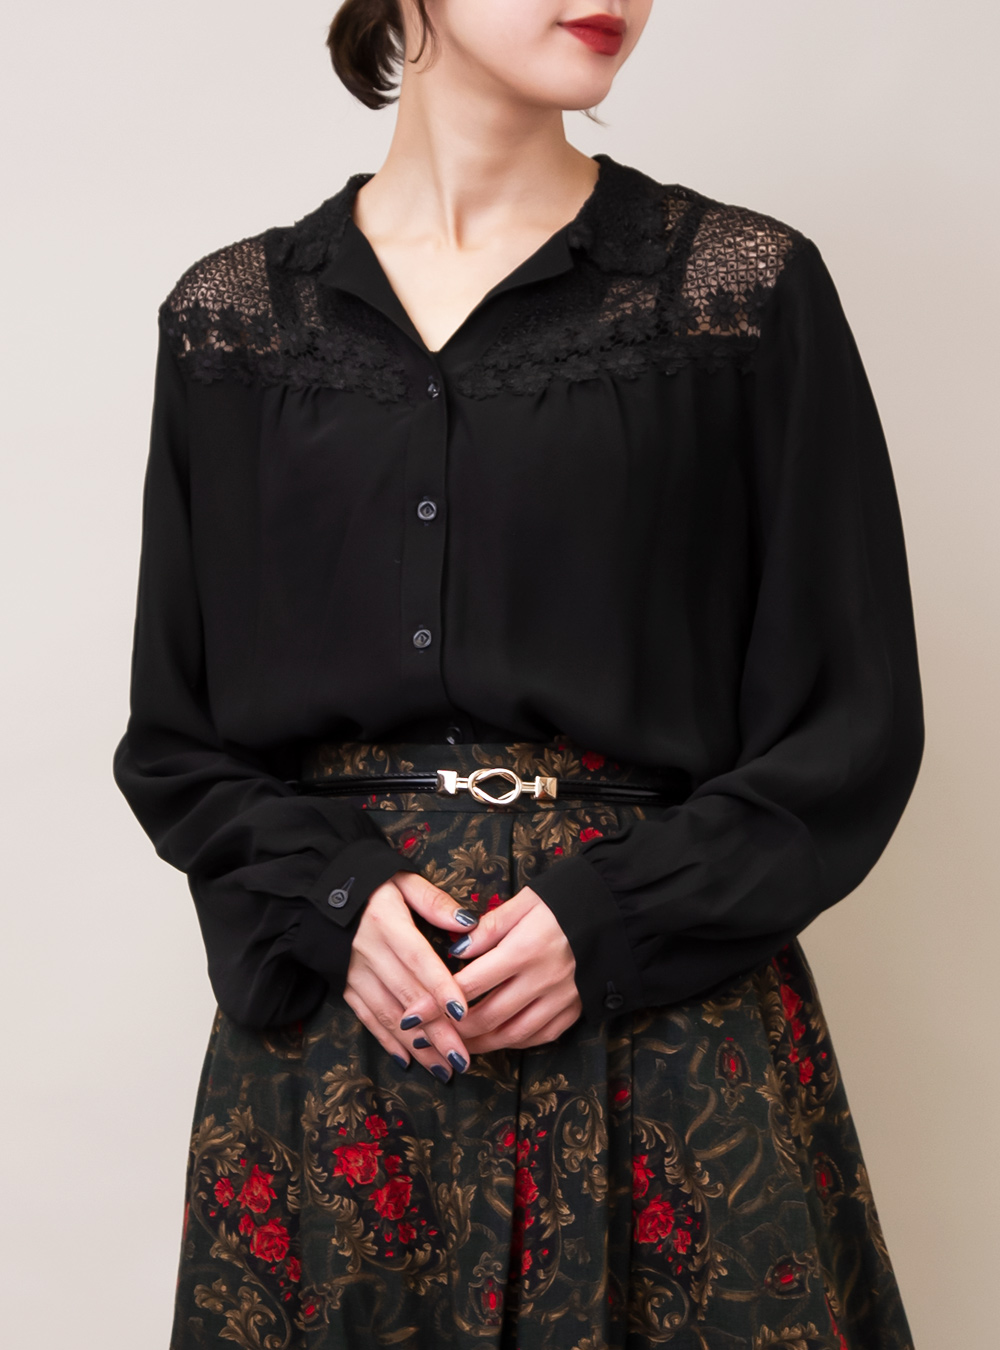 Black Lace Flower Blouse